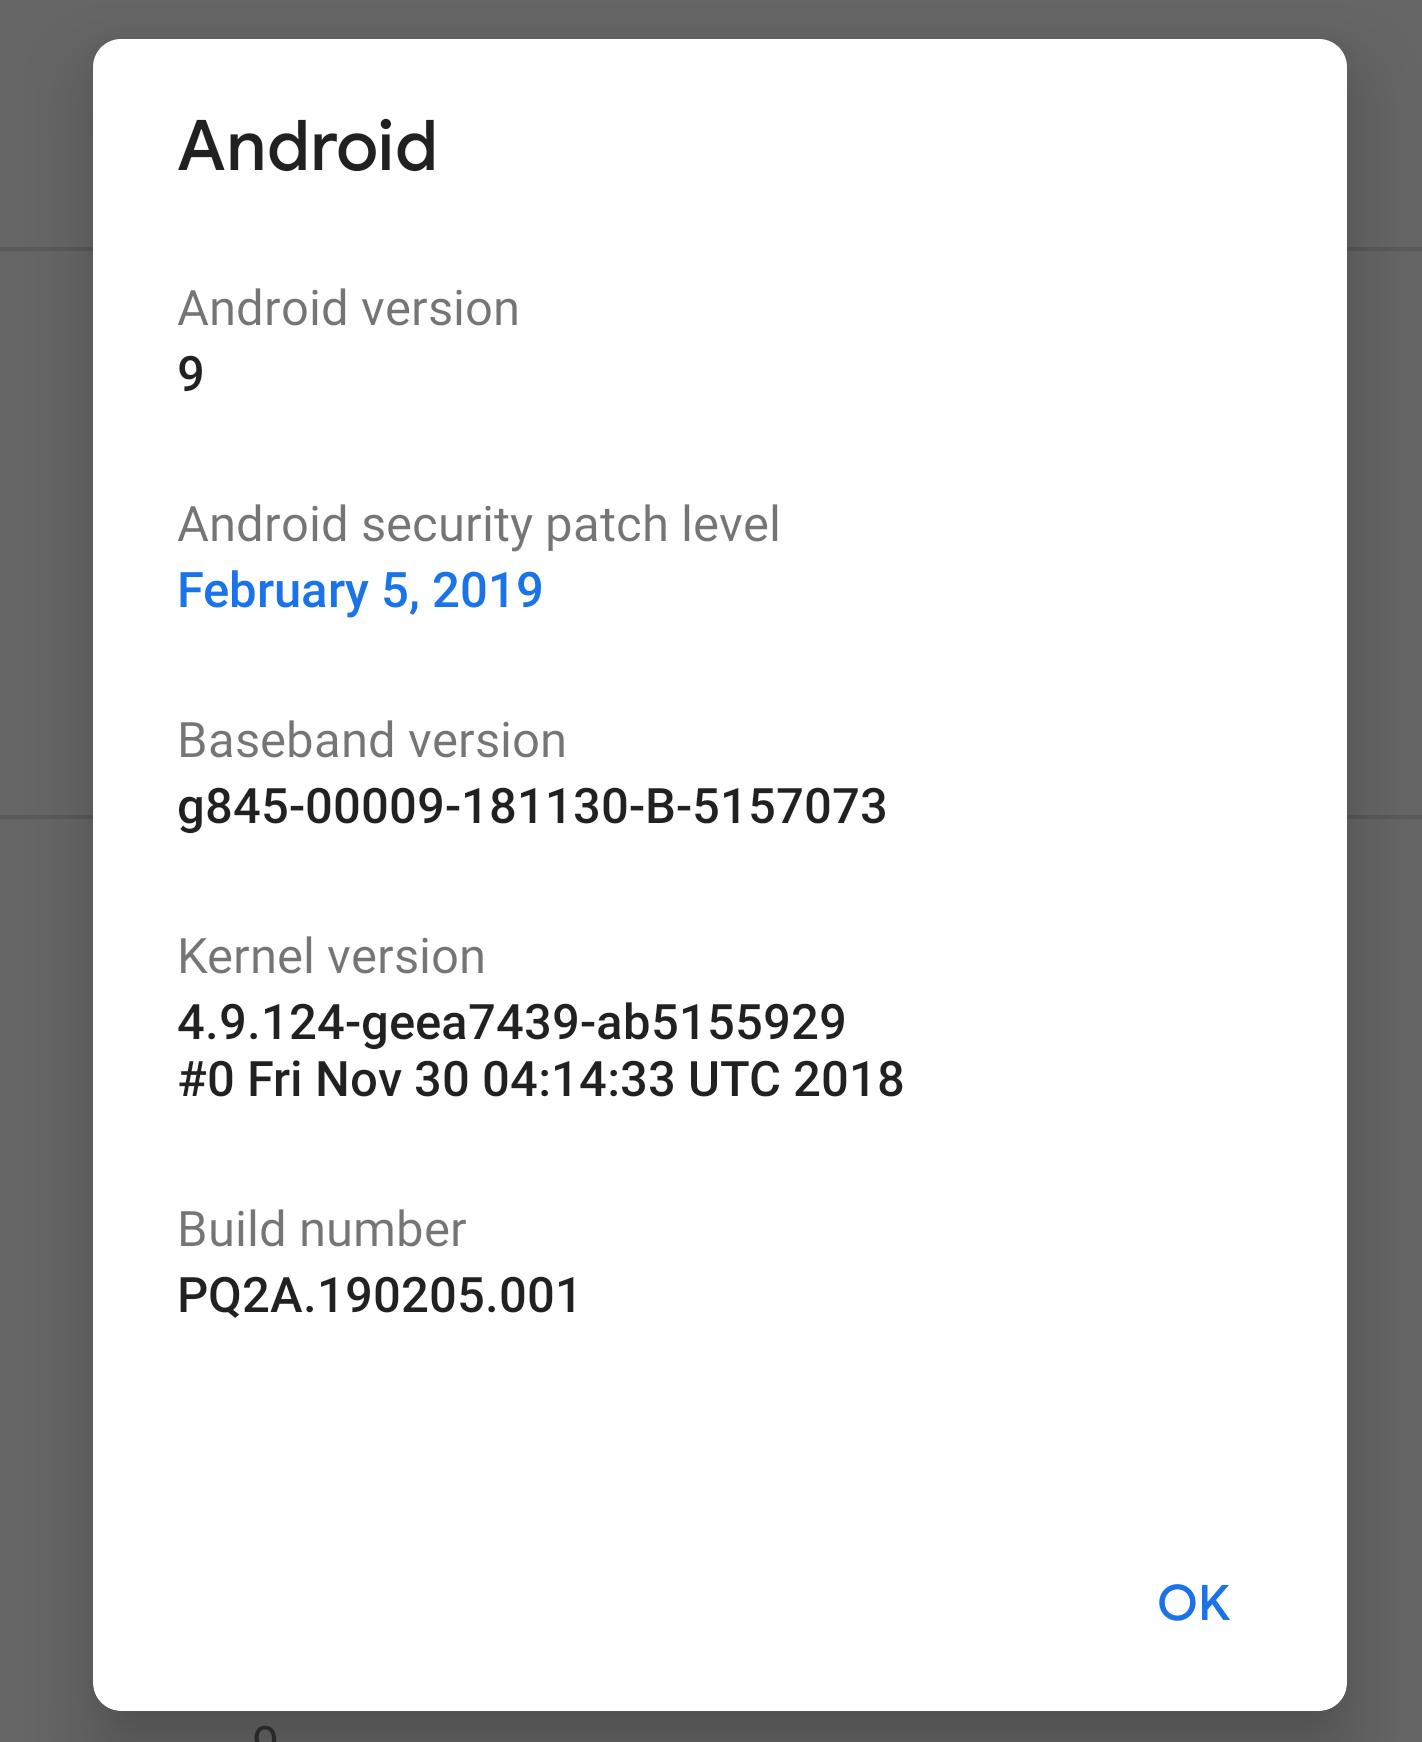 I've downloaded the Android 9 update 5 times on my pixel 3, but it